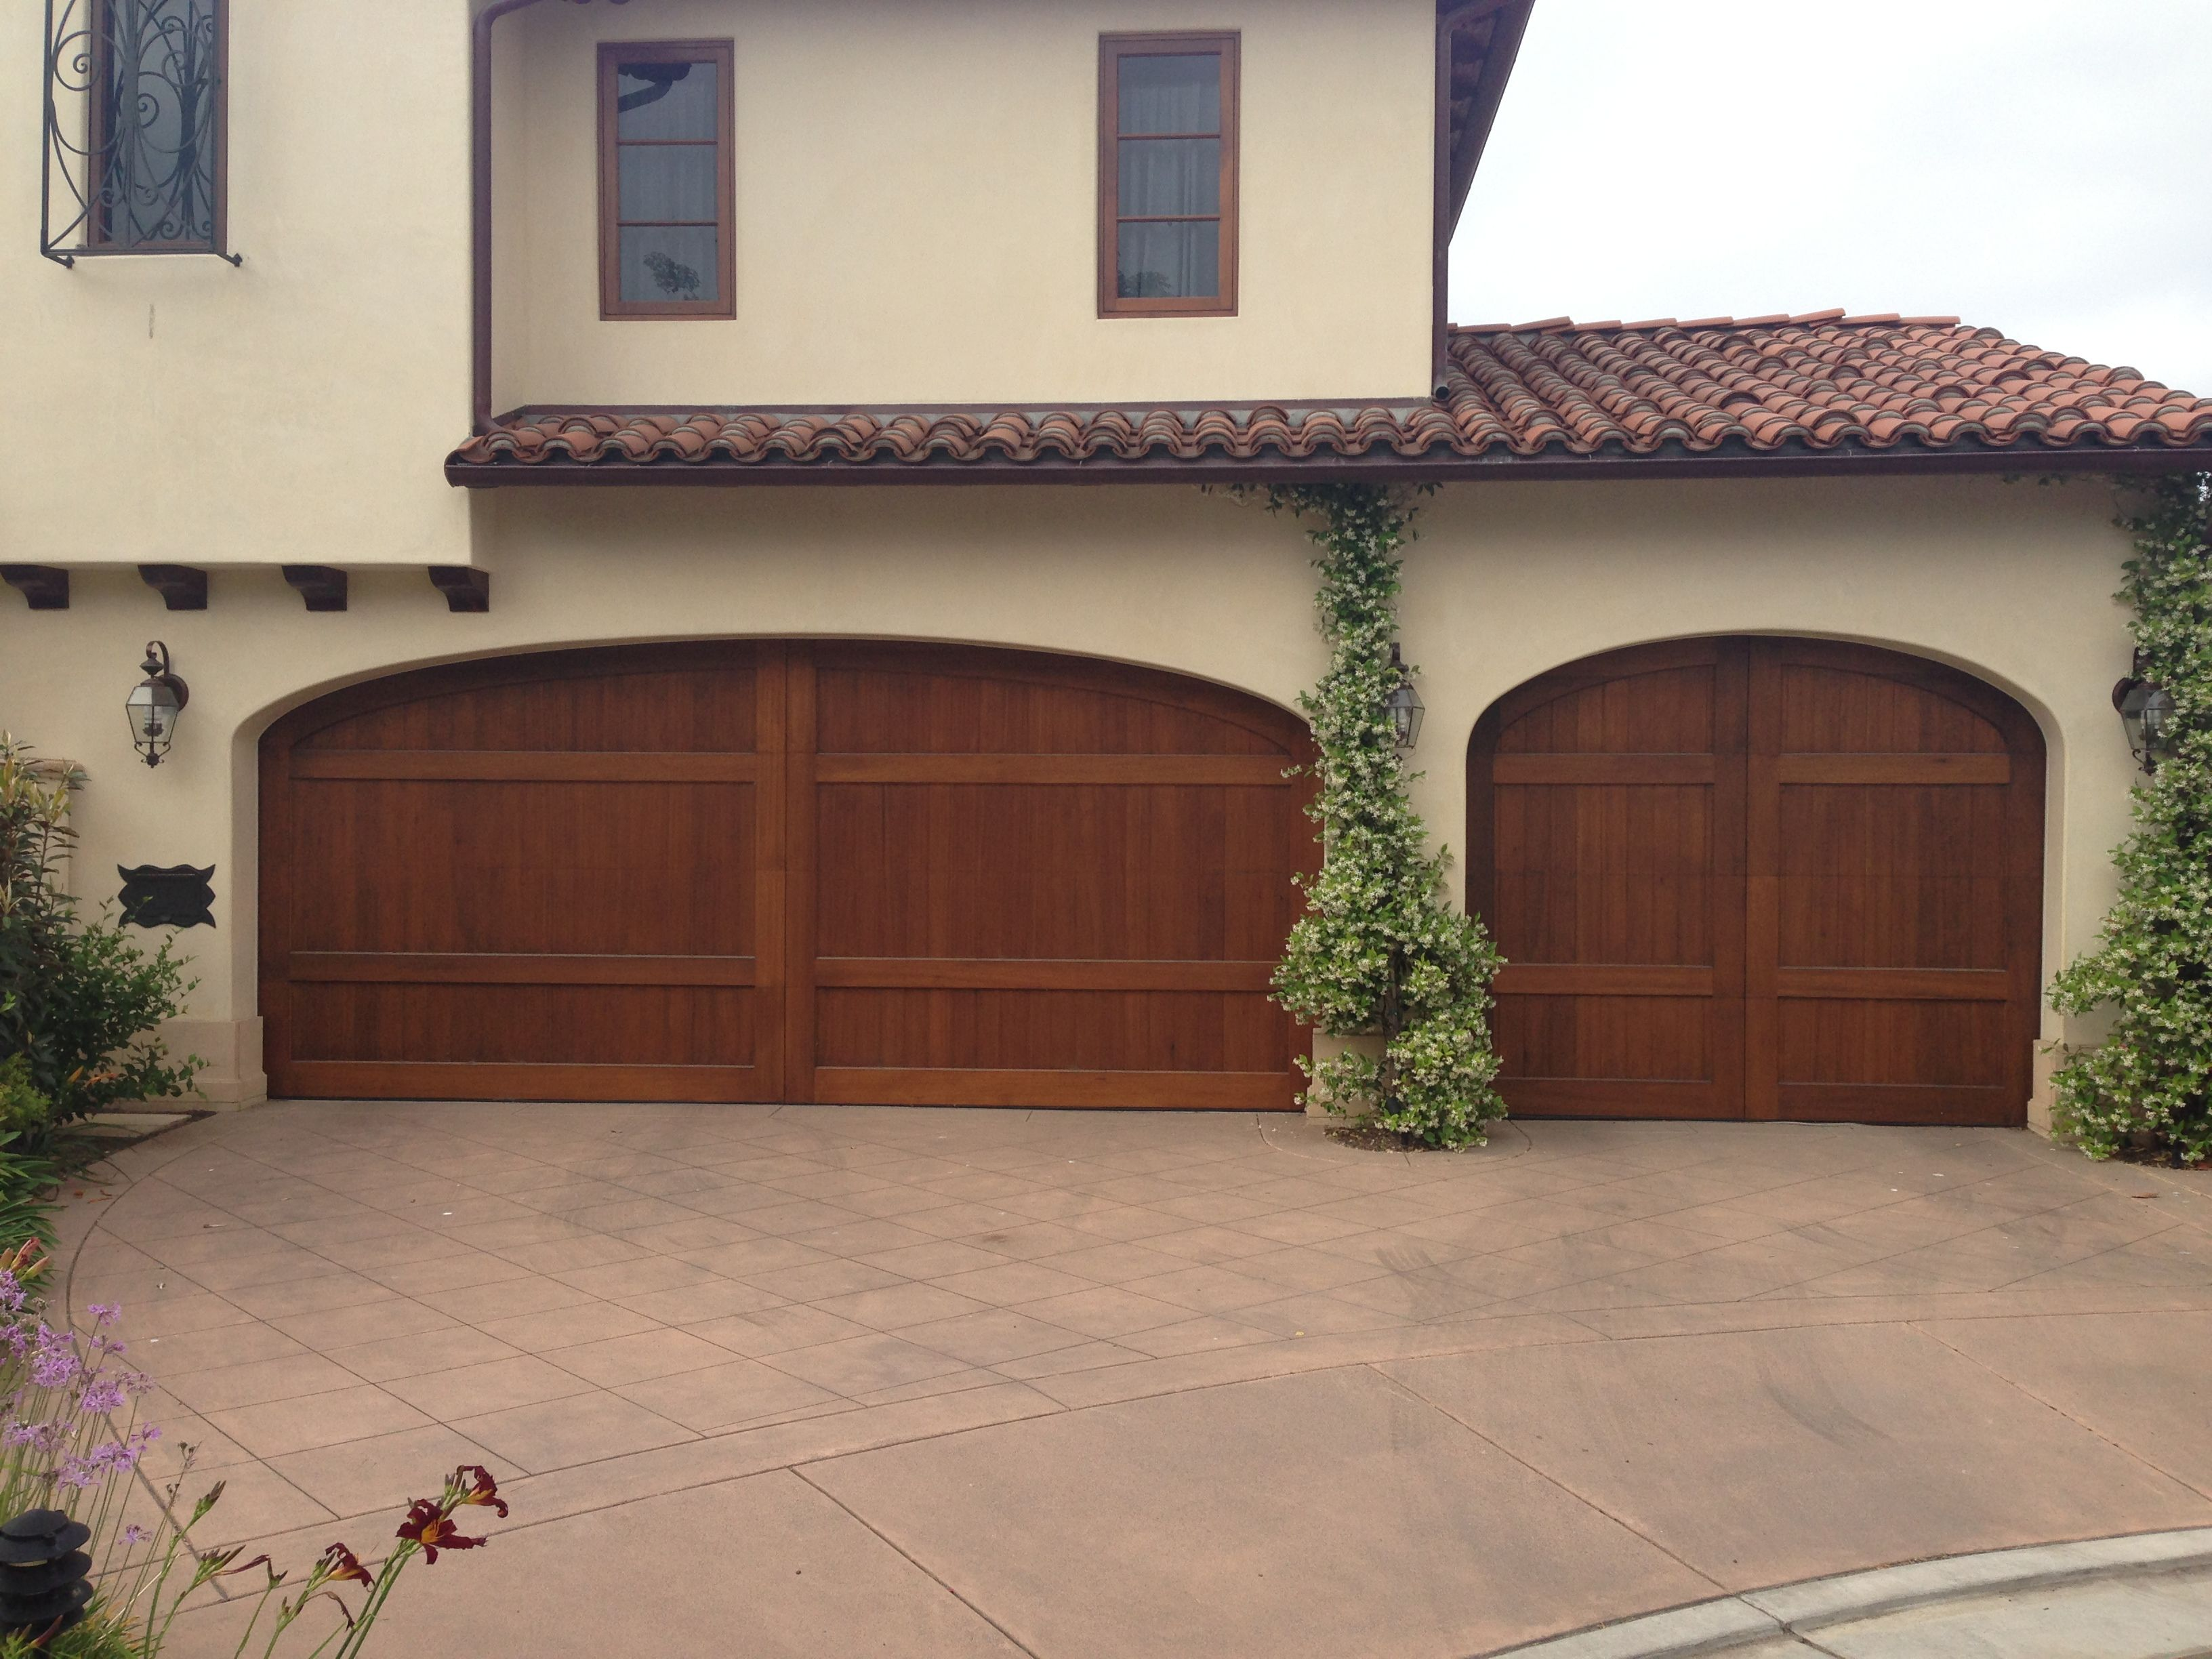 Custom wood stain grade sectional garage doors installed in san custom wood stain grade sectional garage doors installed in san diego beautiful natural wood rubansaba